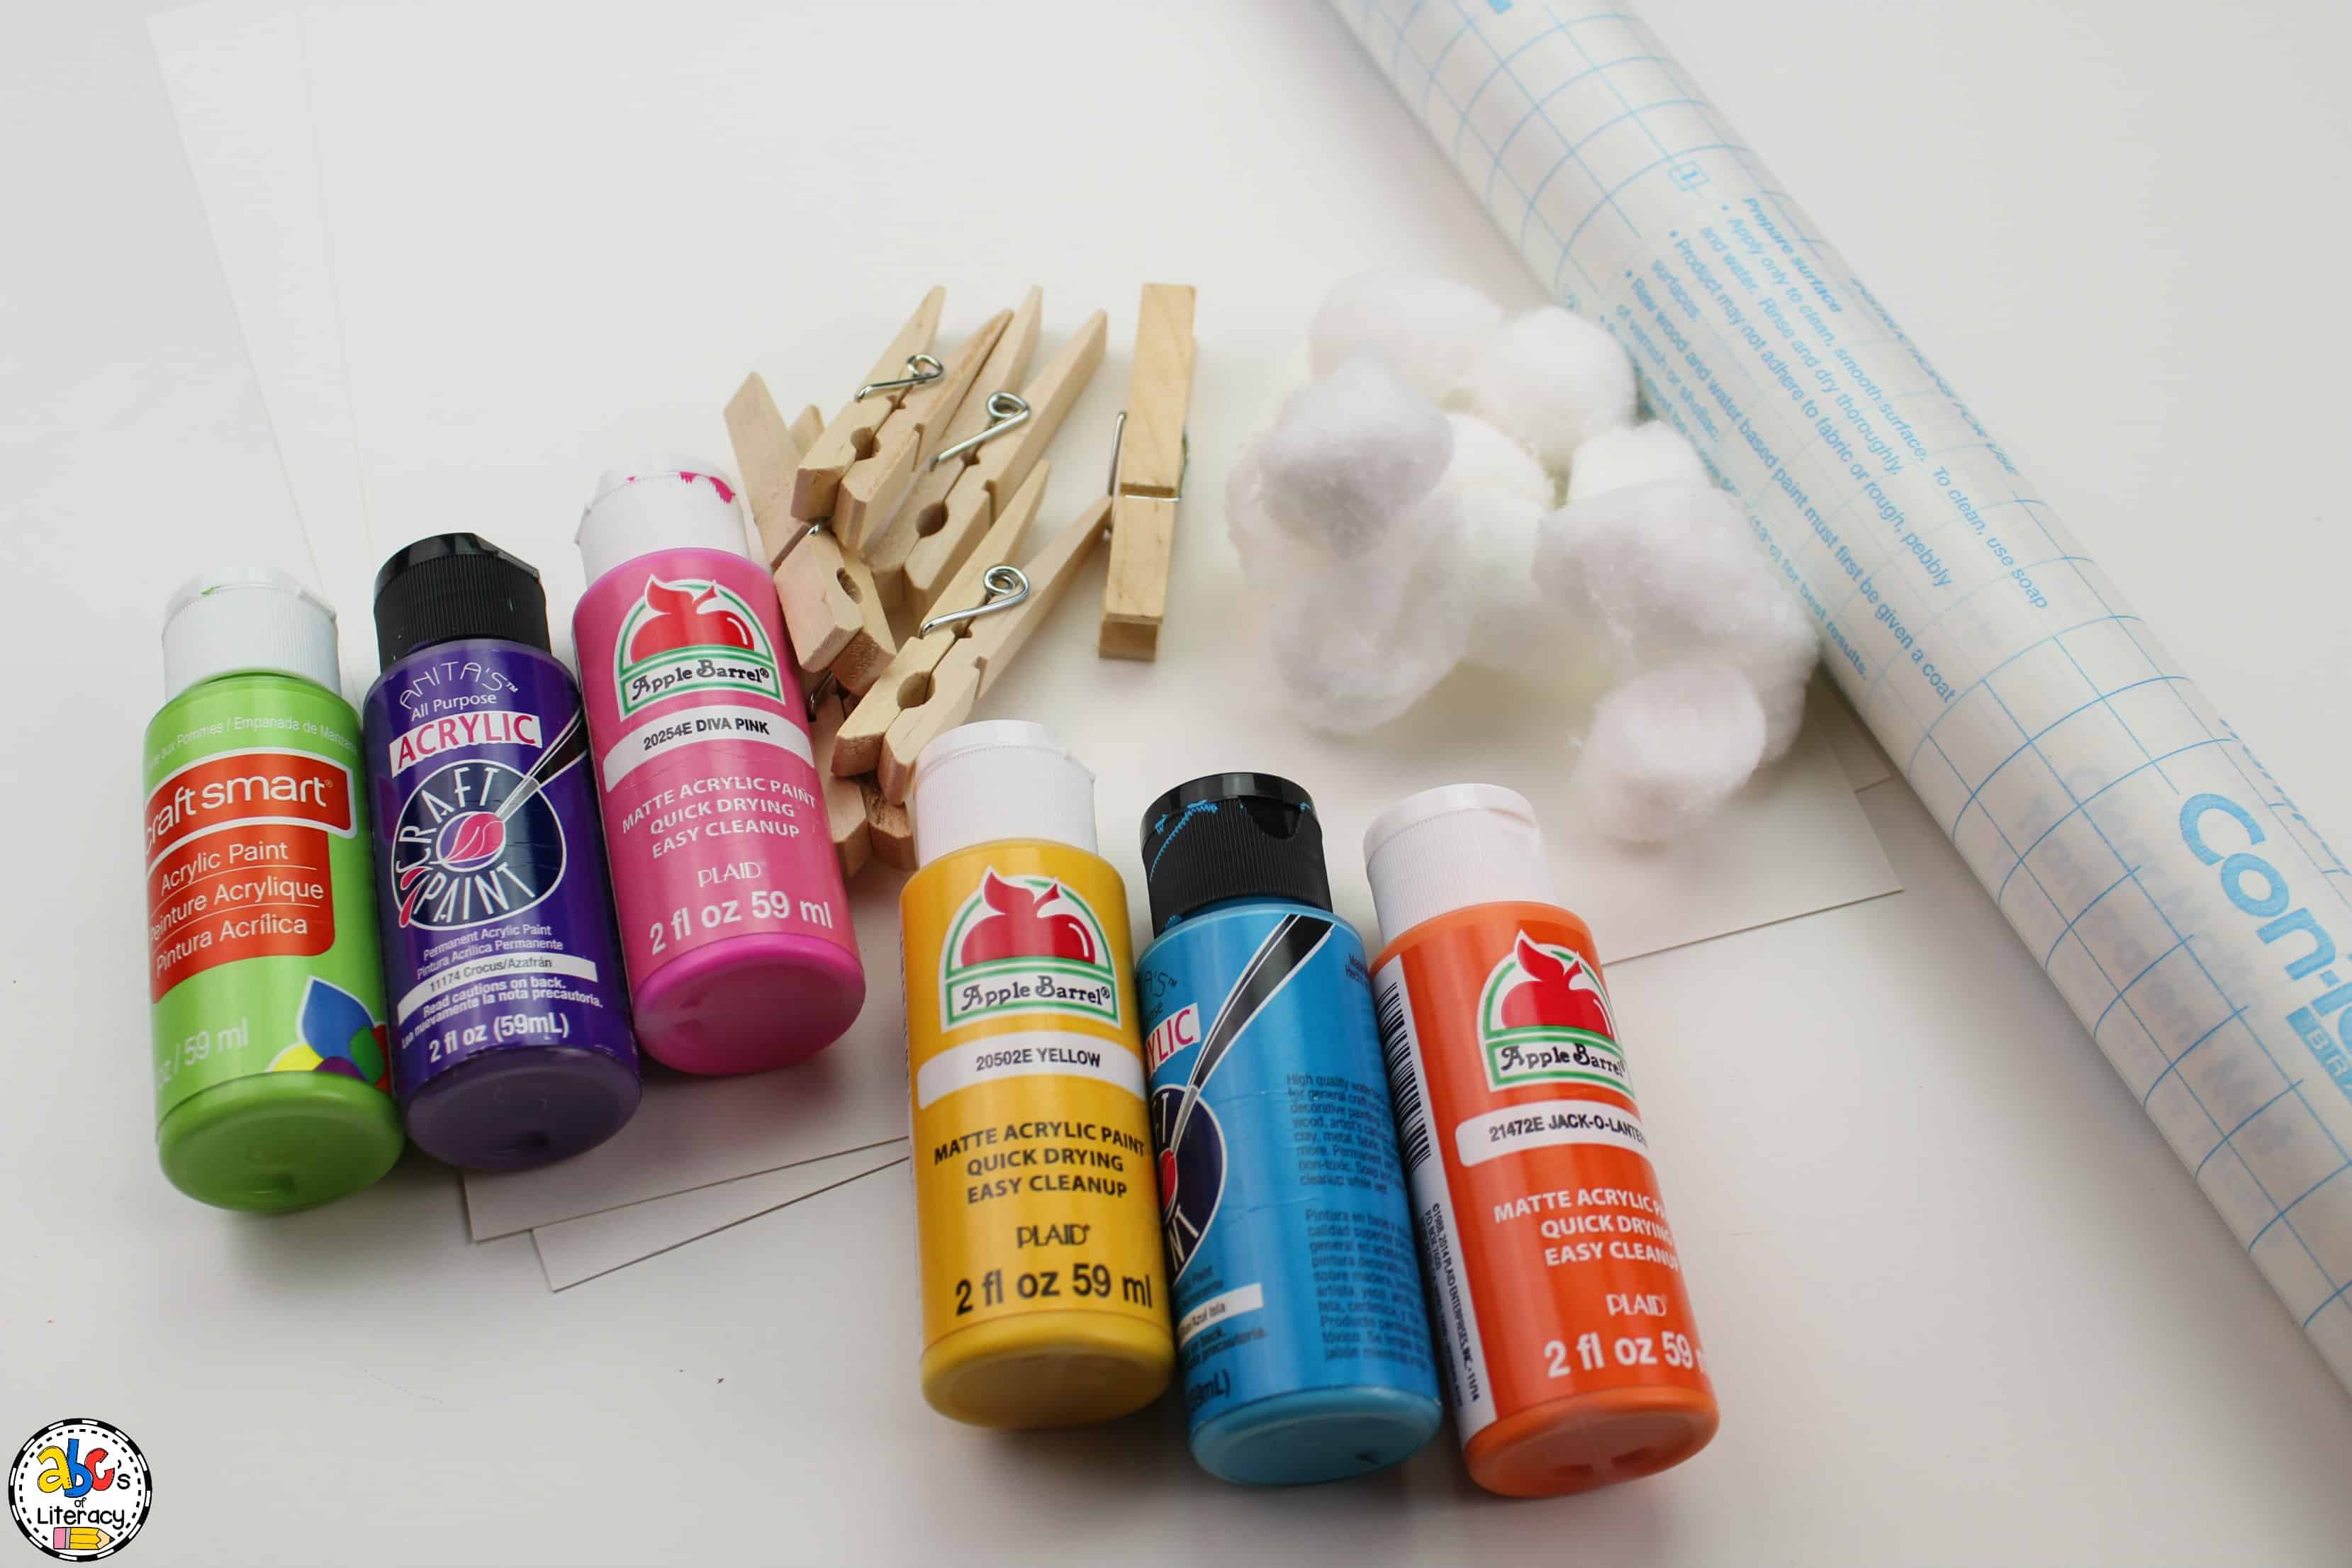 paint colors to use for cotton ball painting